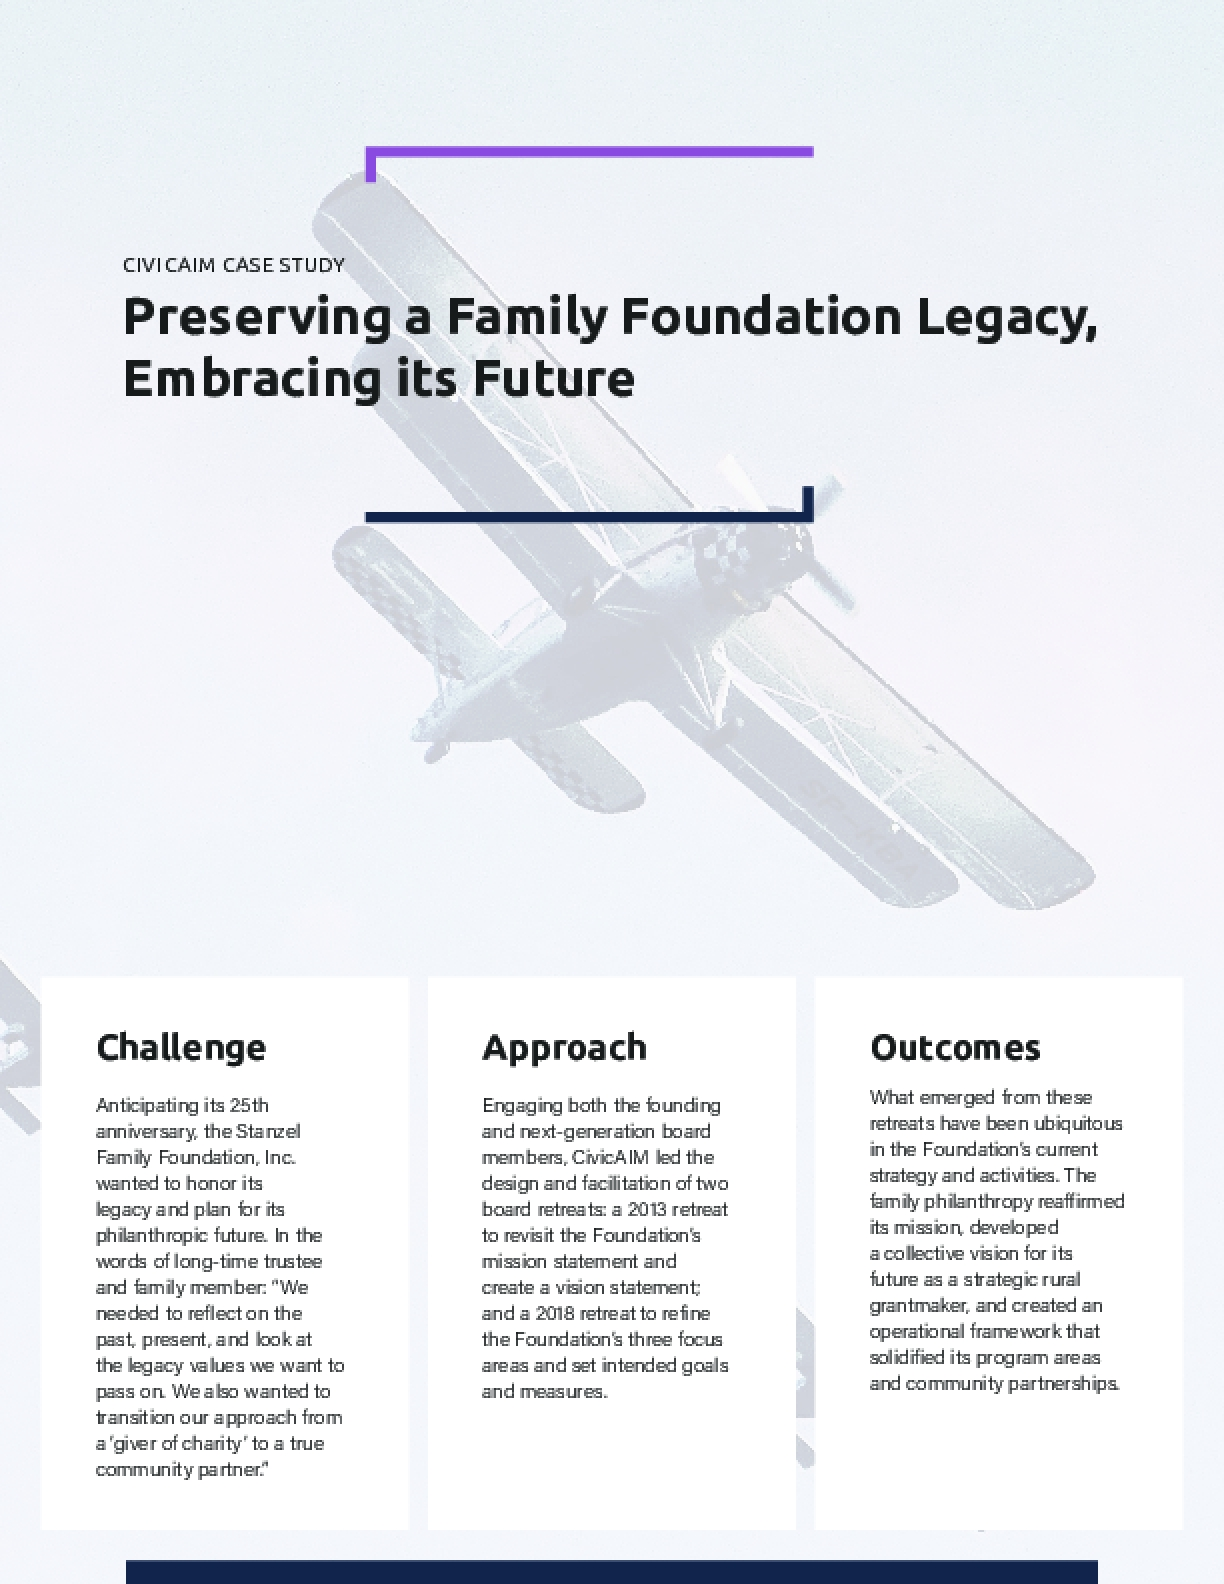 CIVICAIM CASE STUDY -  Preserving a Family Foundation Legacy, Embracing its Future